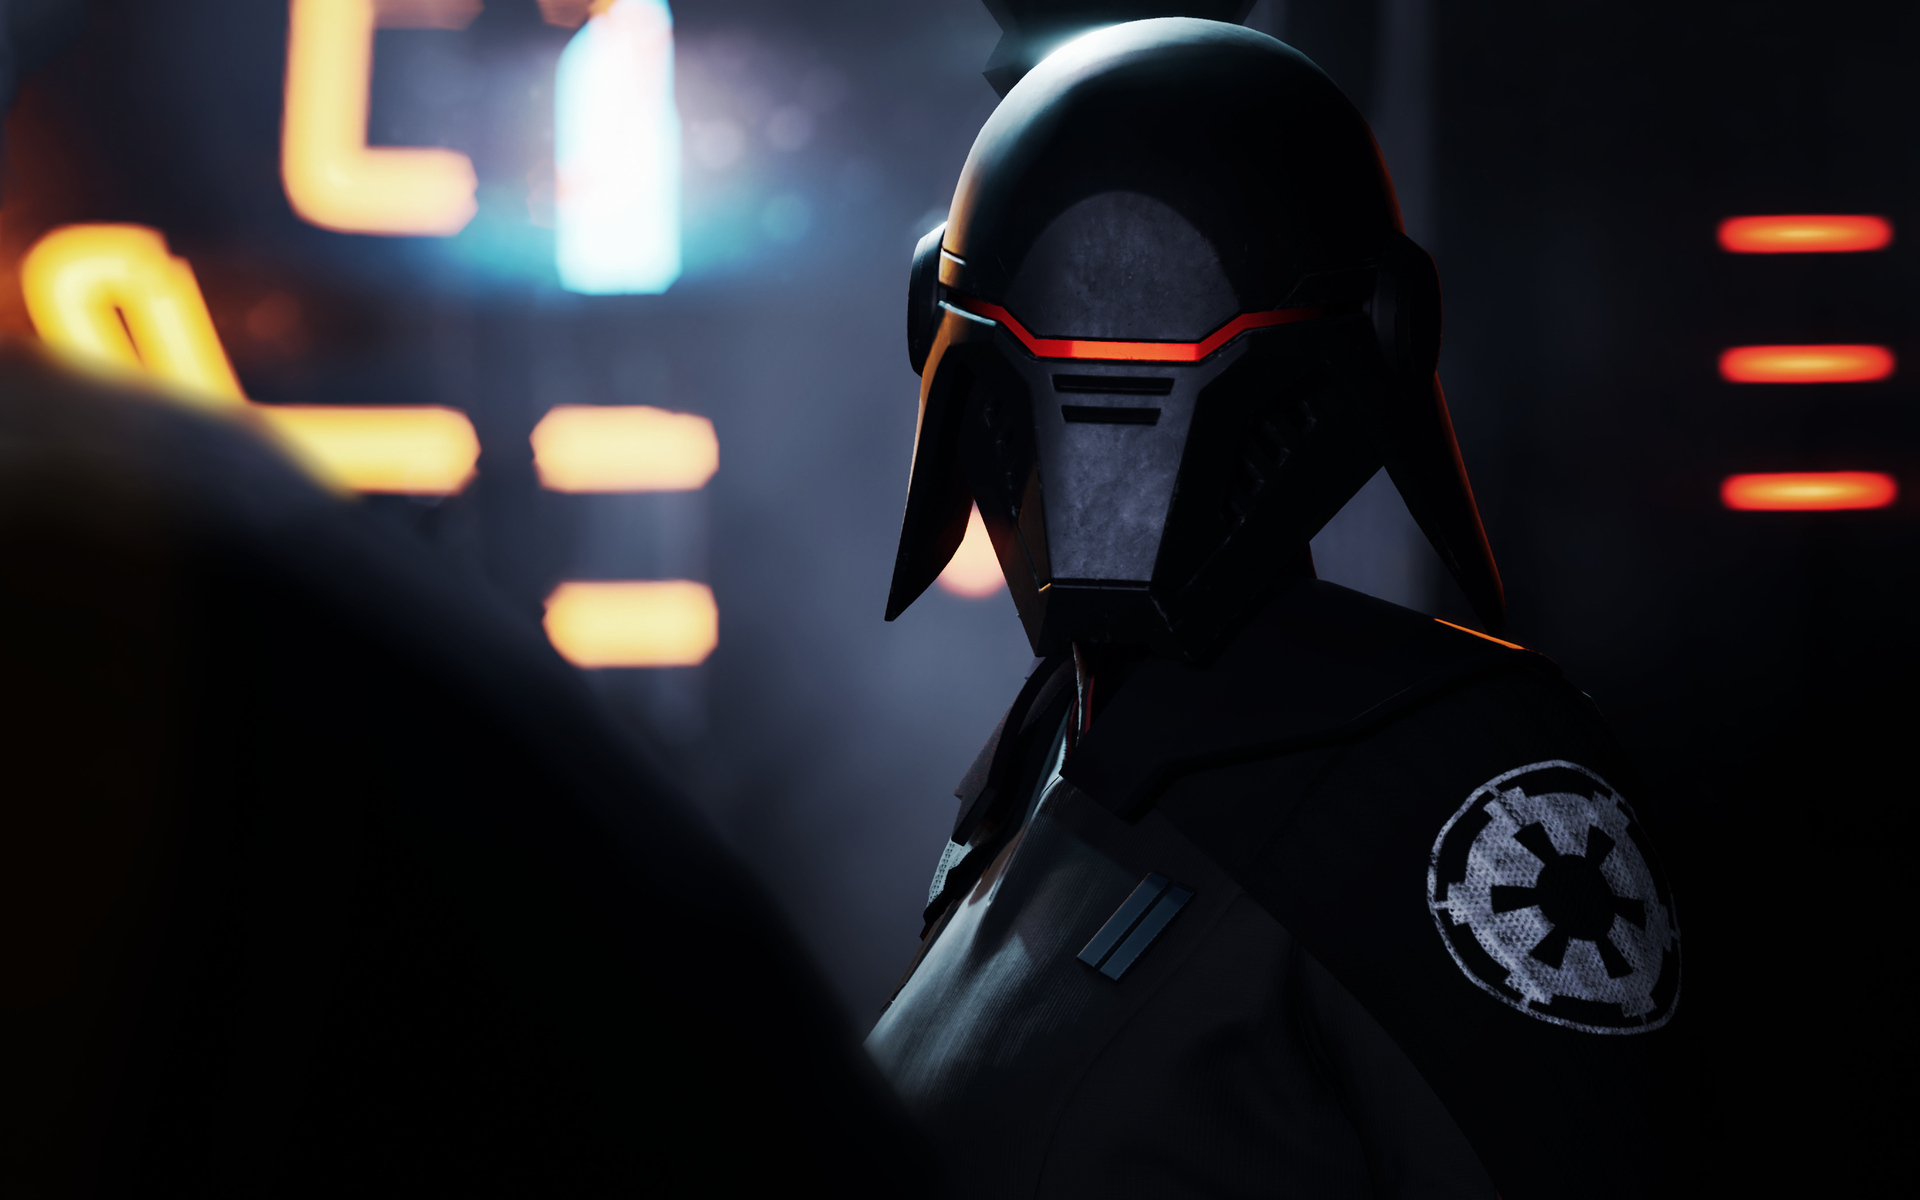 1920x1200 Star Wars Jedi Fallen Order 2019 1080p Resolution Hd 4k Wallpapers Images Backgrounds Photos And Pictures